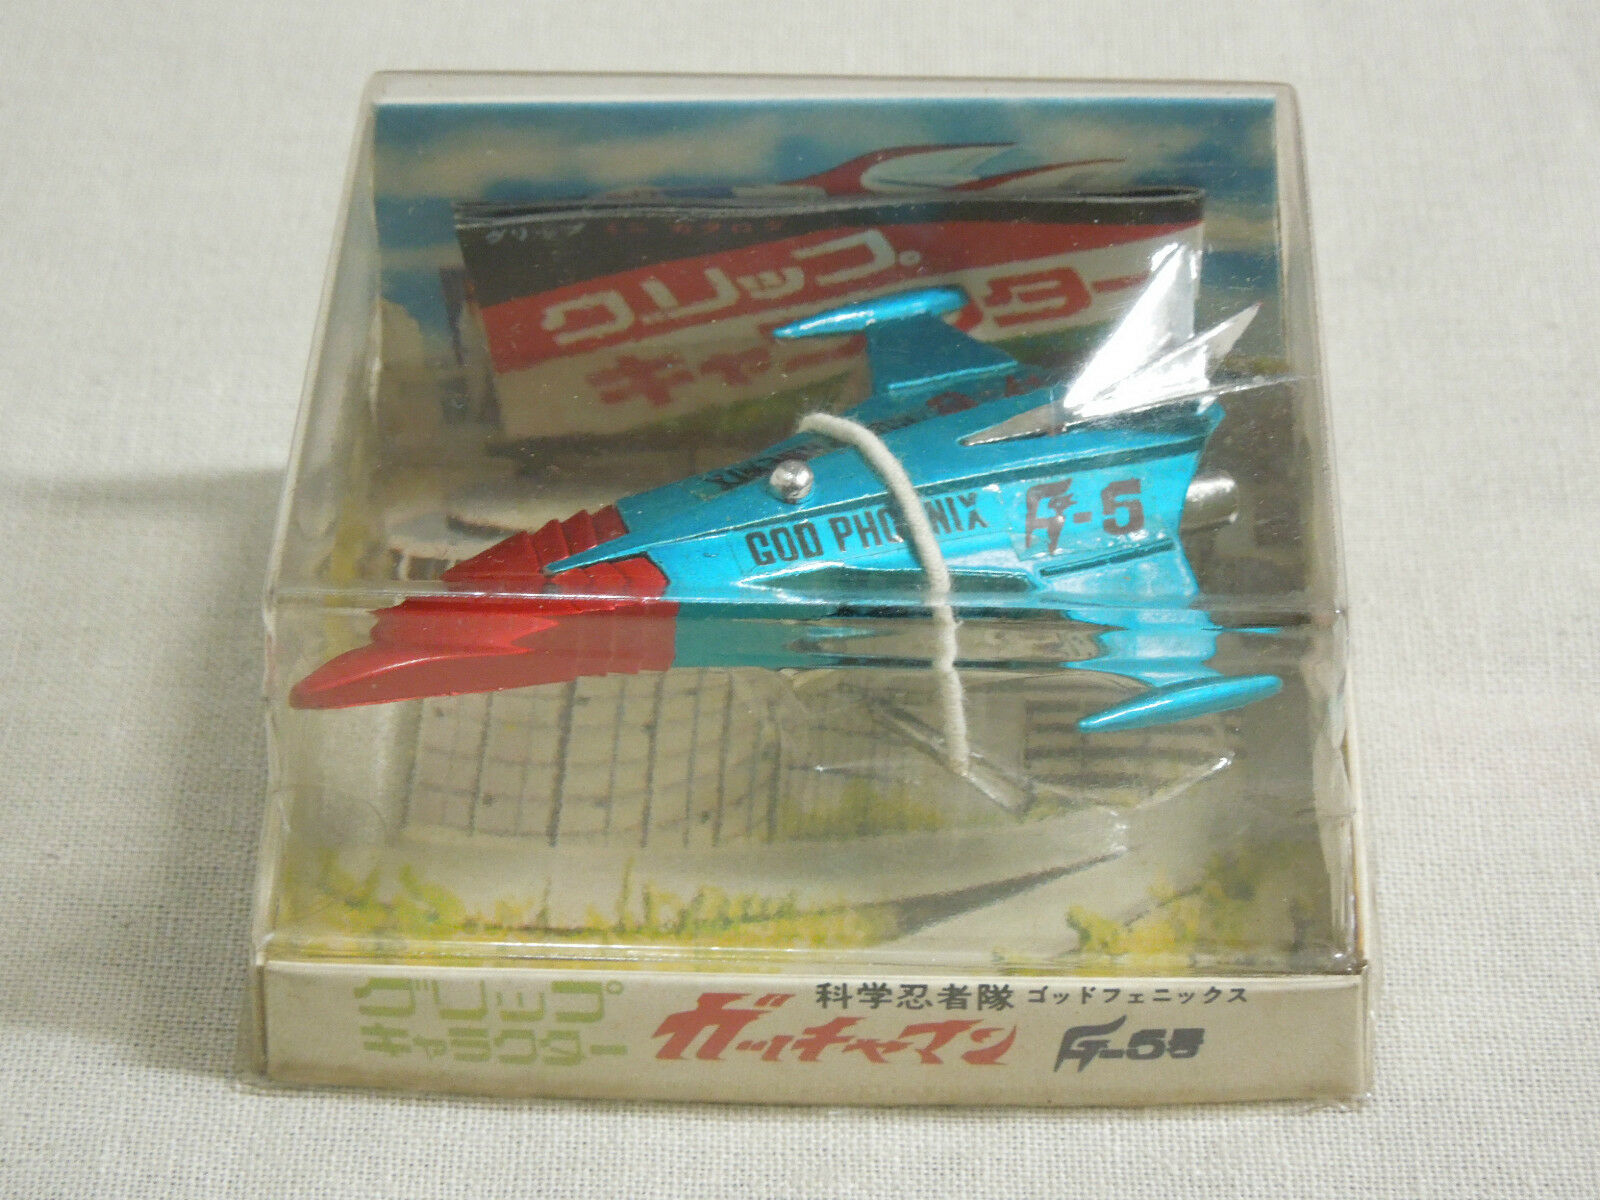 Rare Eidai grip Battle Of The Planets Gatchaman God Phoenix with Mini G-2 Japan